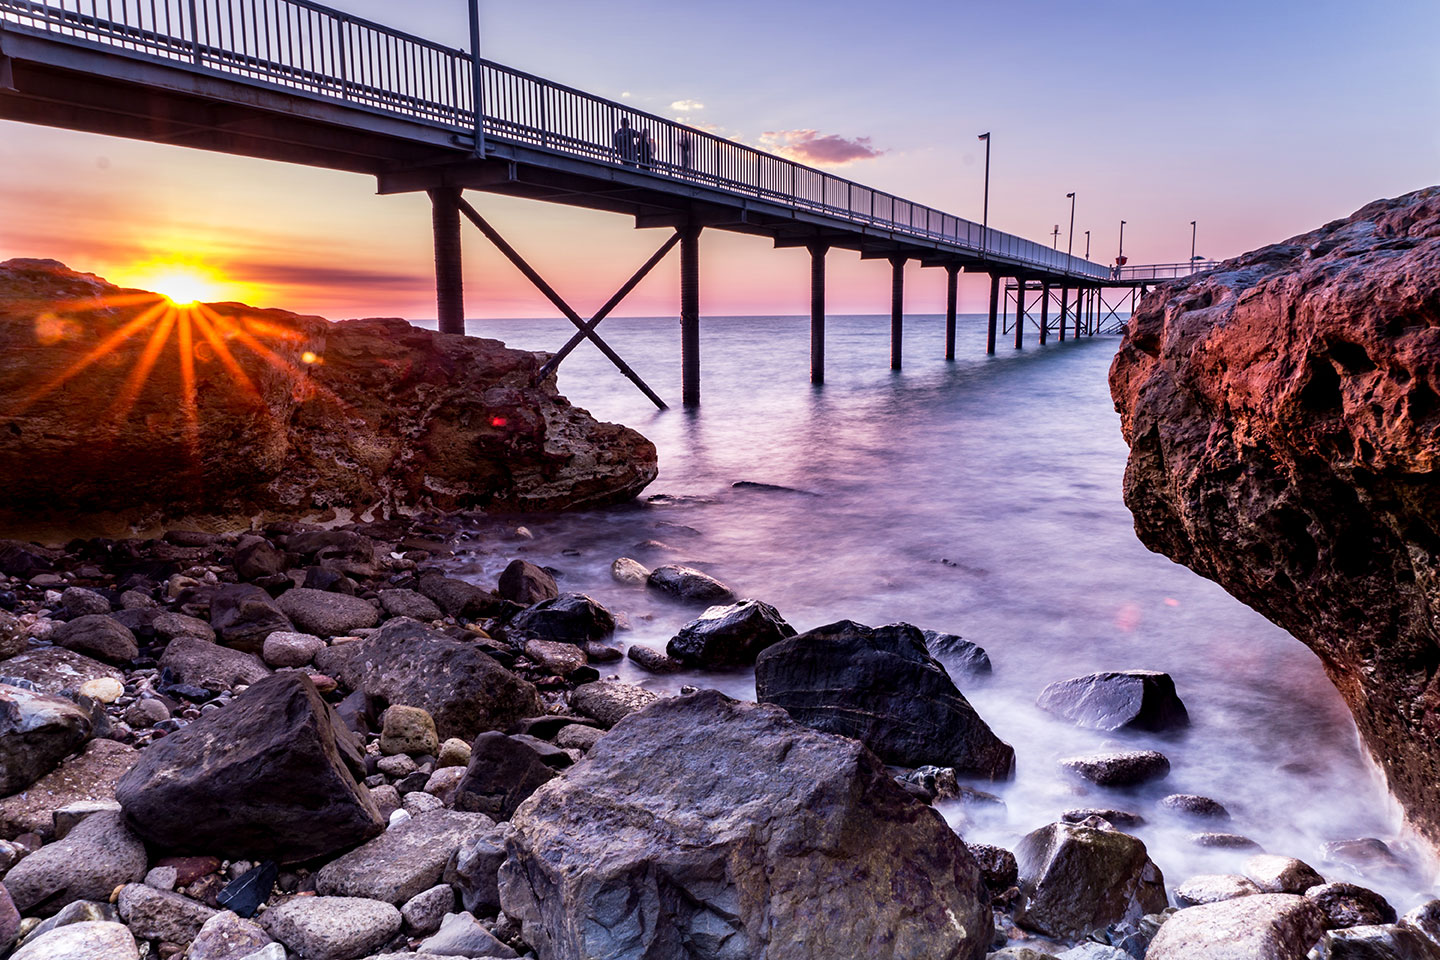 Pier over rushing water in Darwin at sunset